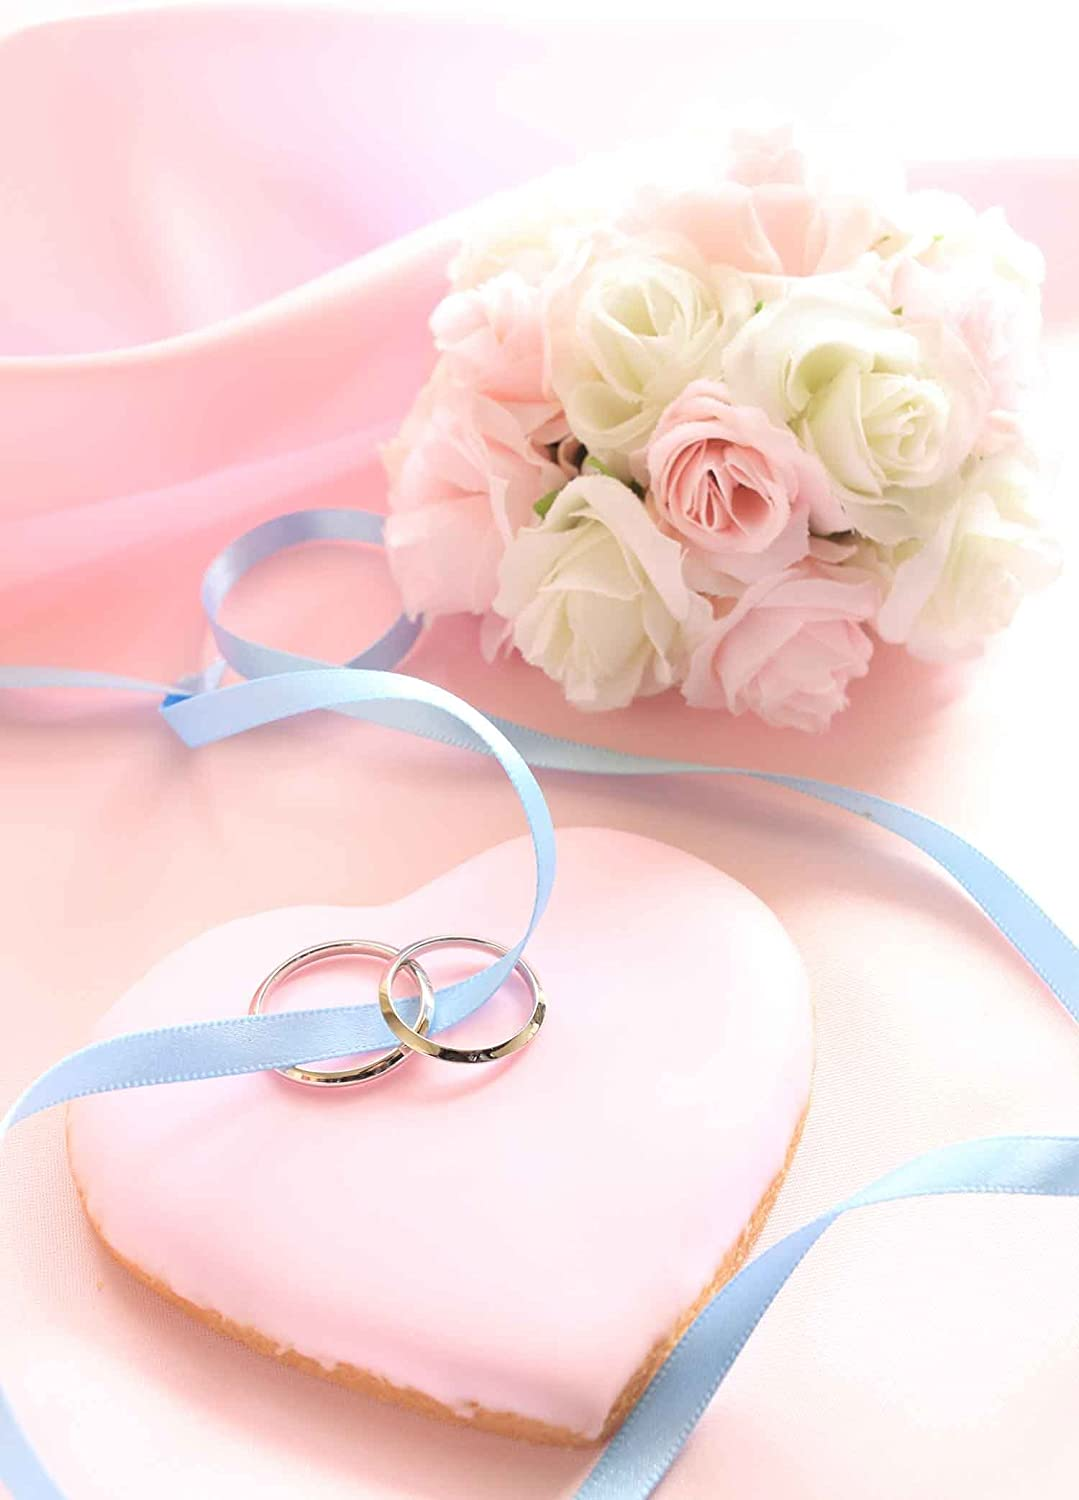 MME Pink Heart Shape Backdrop 5x7ft Upgrade Material Seamless Vinyl Background Photography Wedding Party Photo Studio Props GYMM262